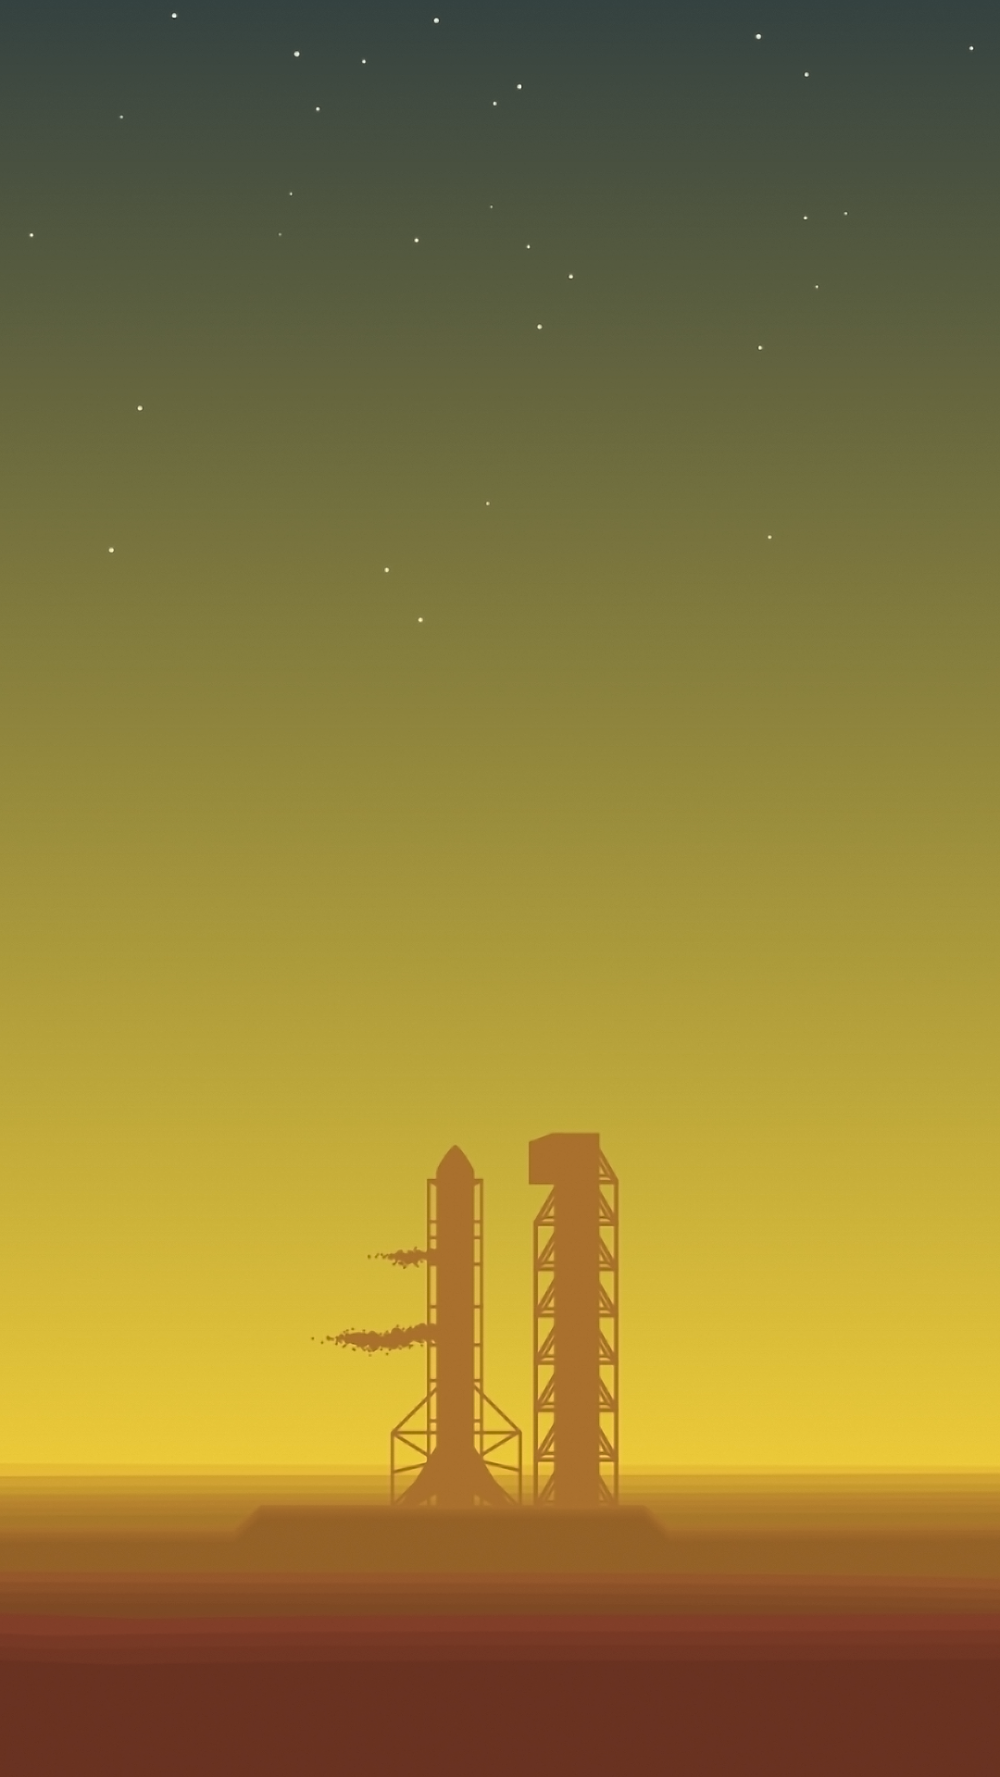 Spacex Wallpaper Minimalist Falcon Launch In 2020 Phone Wallpaper Space Phone Wallpaper Wallpaper